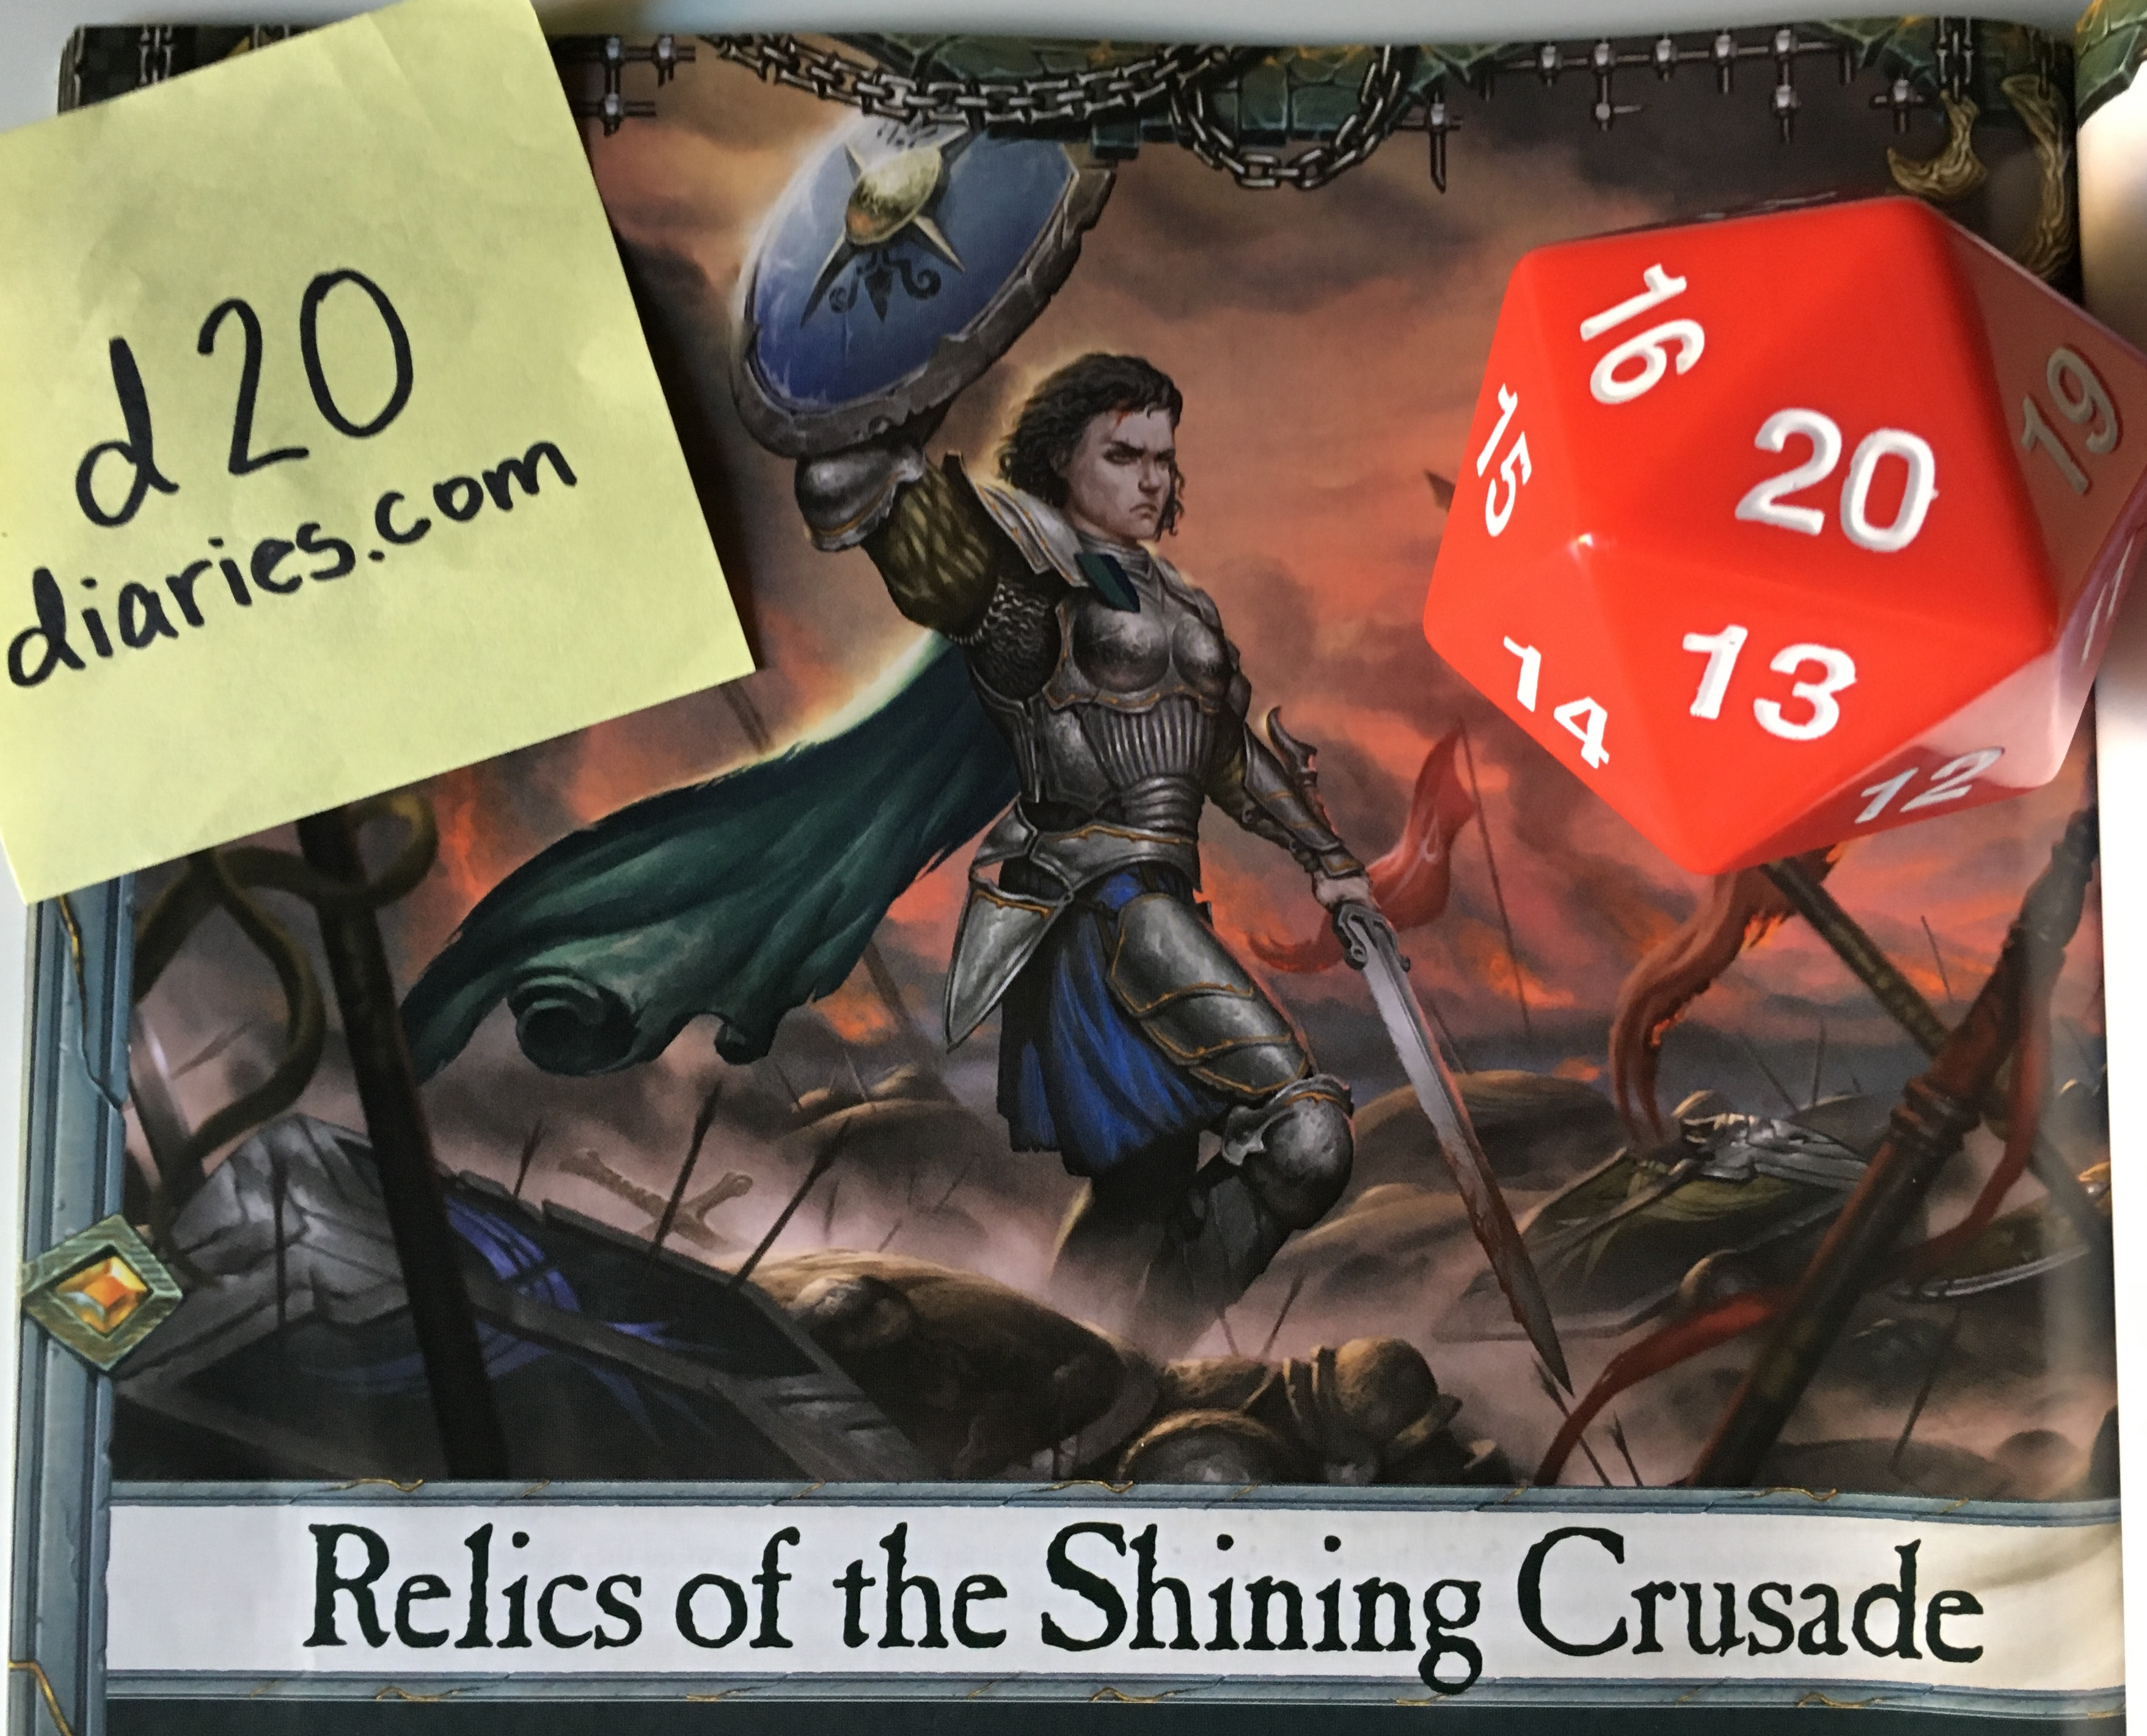 Relics of the Shining Crusade